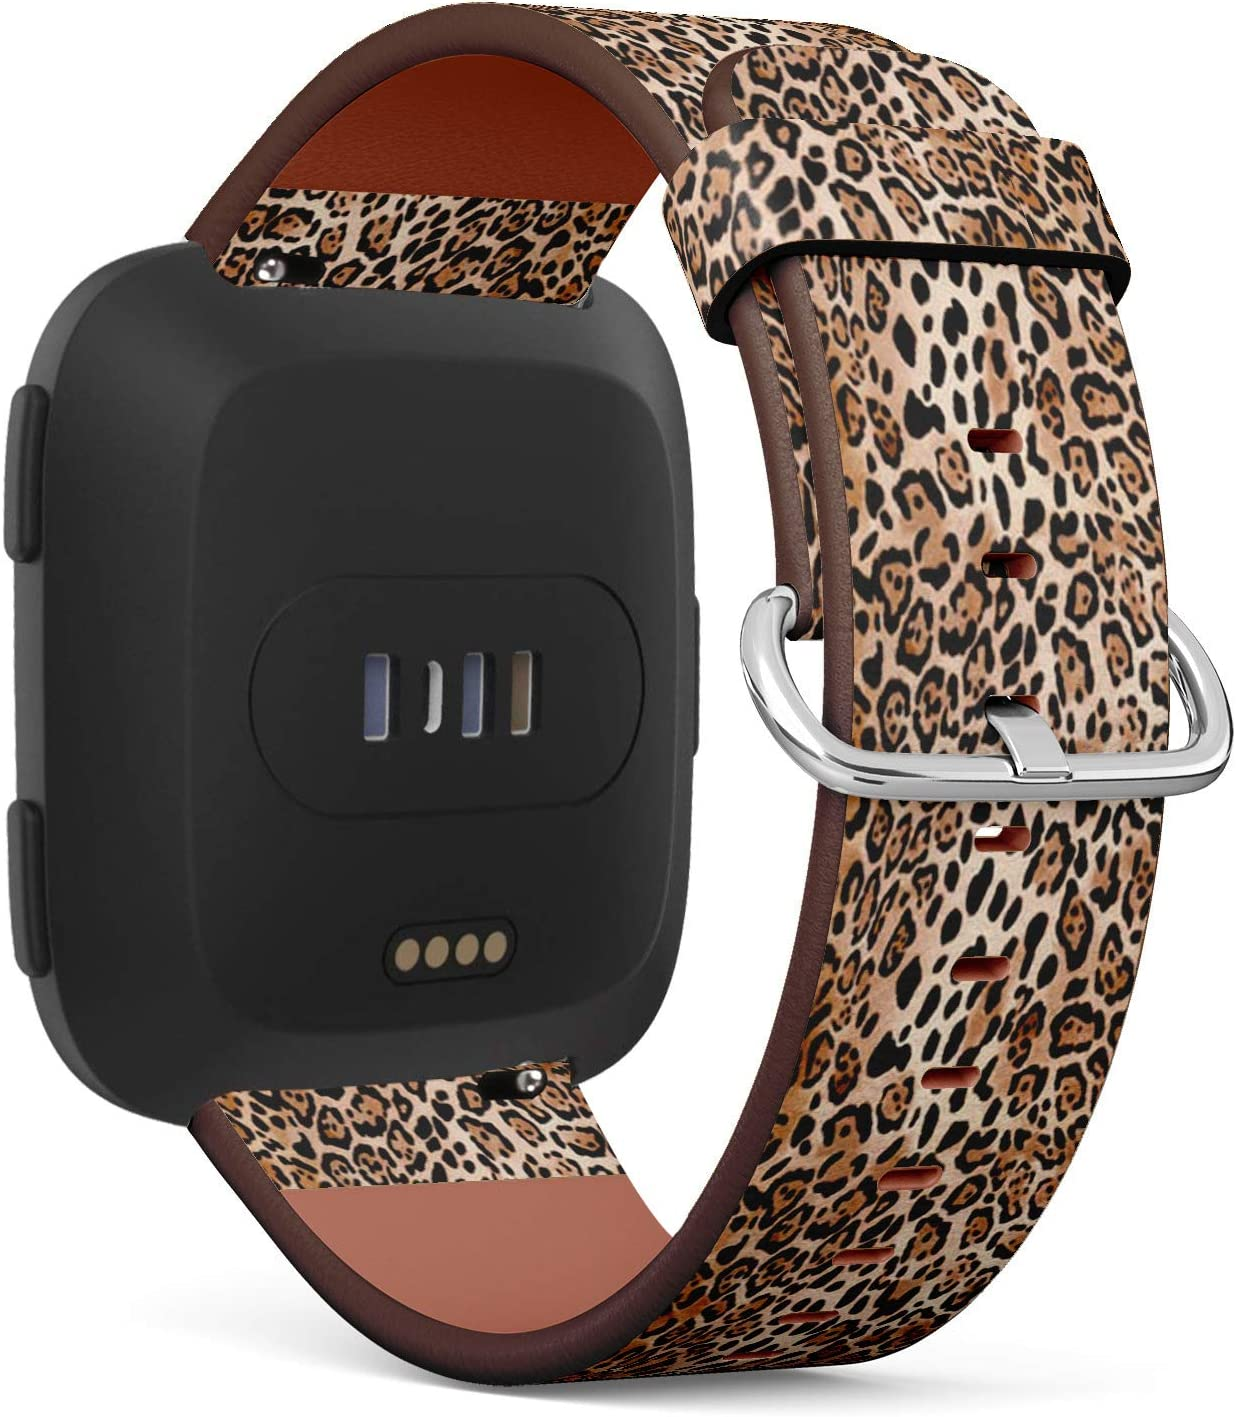 Compatible with Fitbit Versa, Versa 2, Versa Lite - Quick Release Leather Wristband Bracelet Replacement Accessory Band - Natural Animal Print